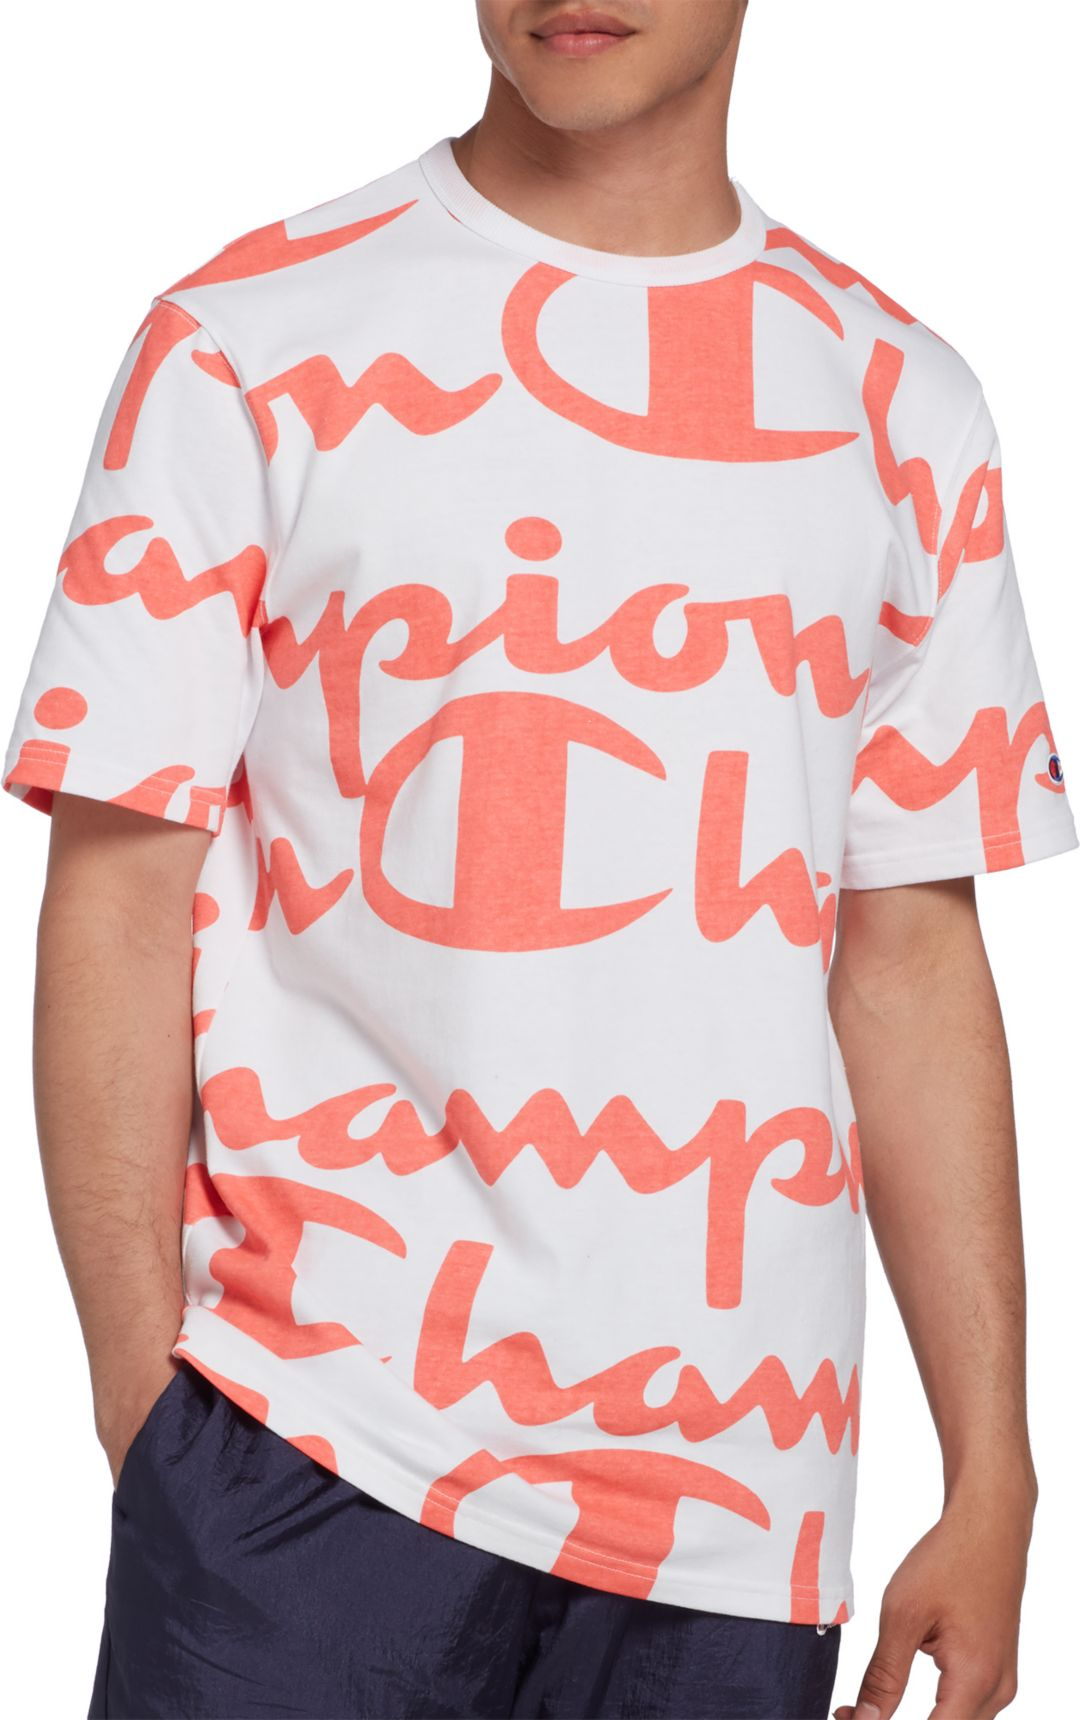 2ad201f46abb Champion Life Men's Heritage Allover Print Tee. noImageFound. Previous